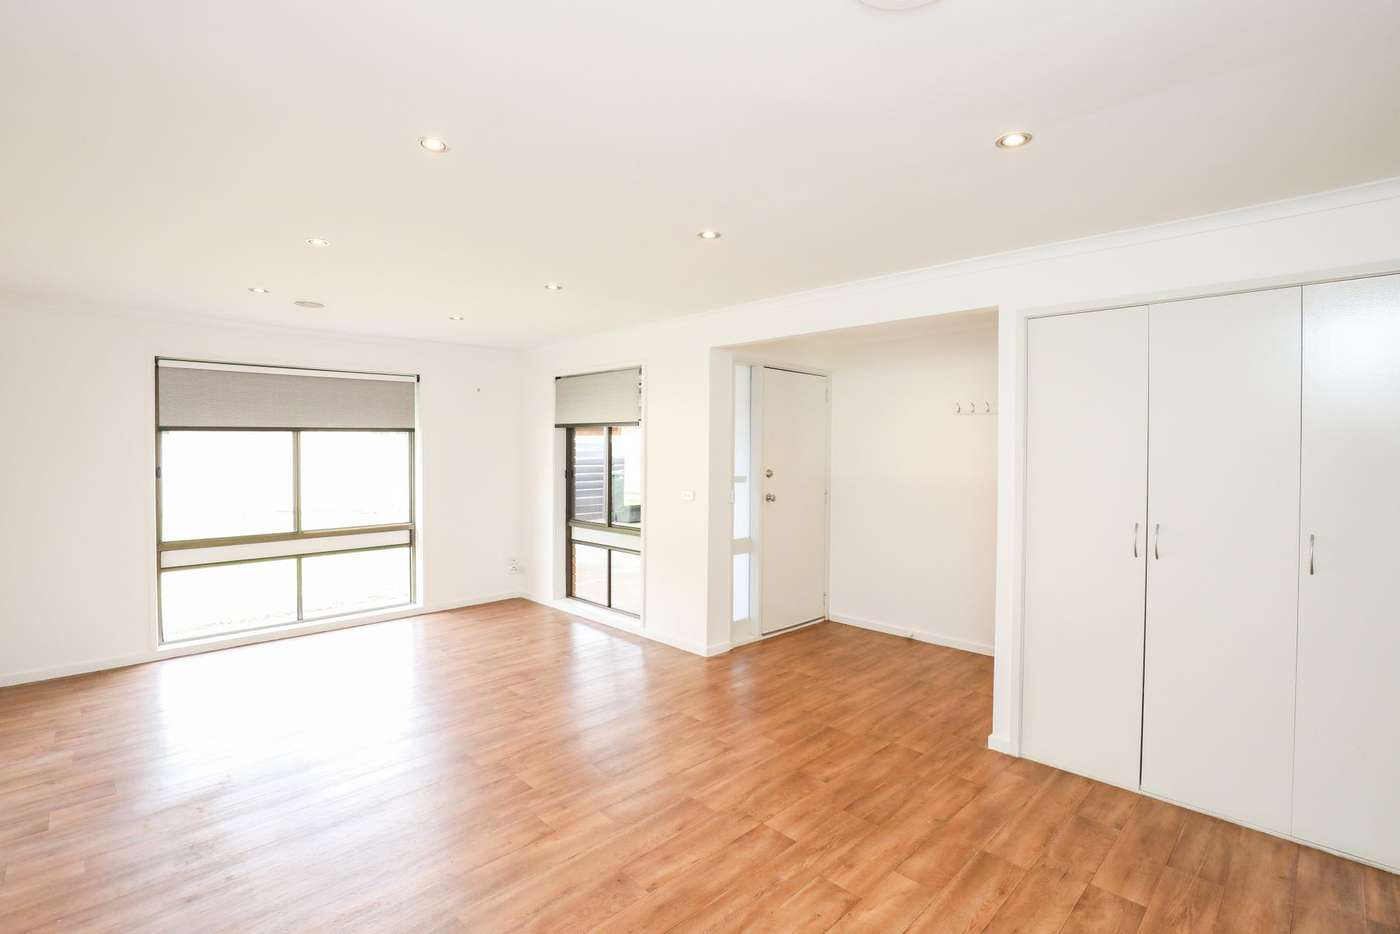 Sixth view of Homely house listing, 2 Baker Court, Mildura VIC 3500